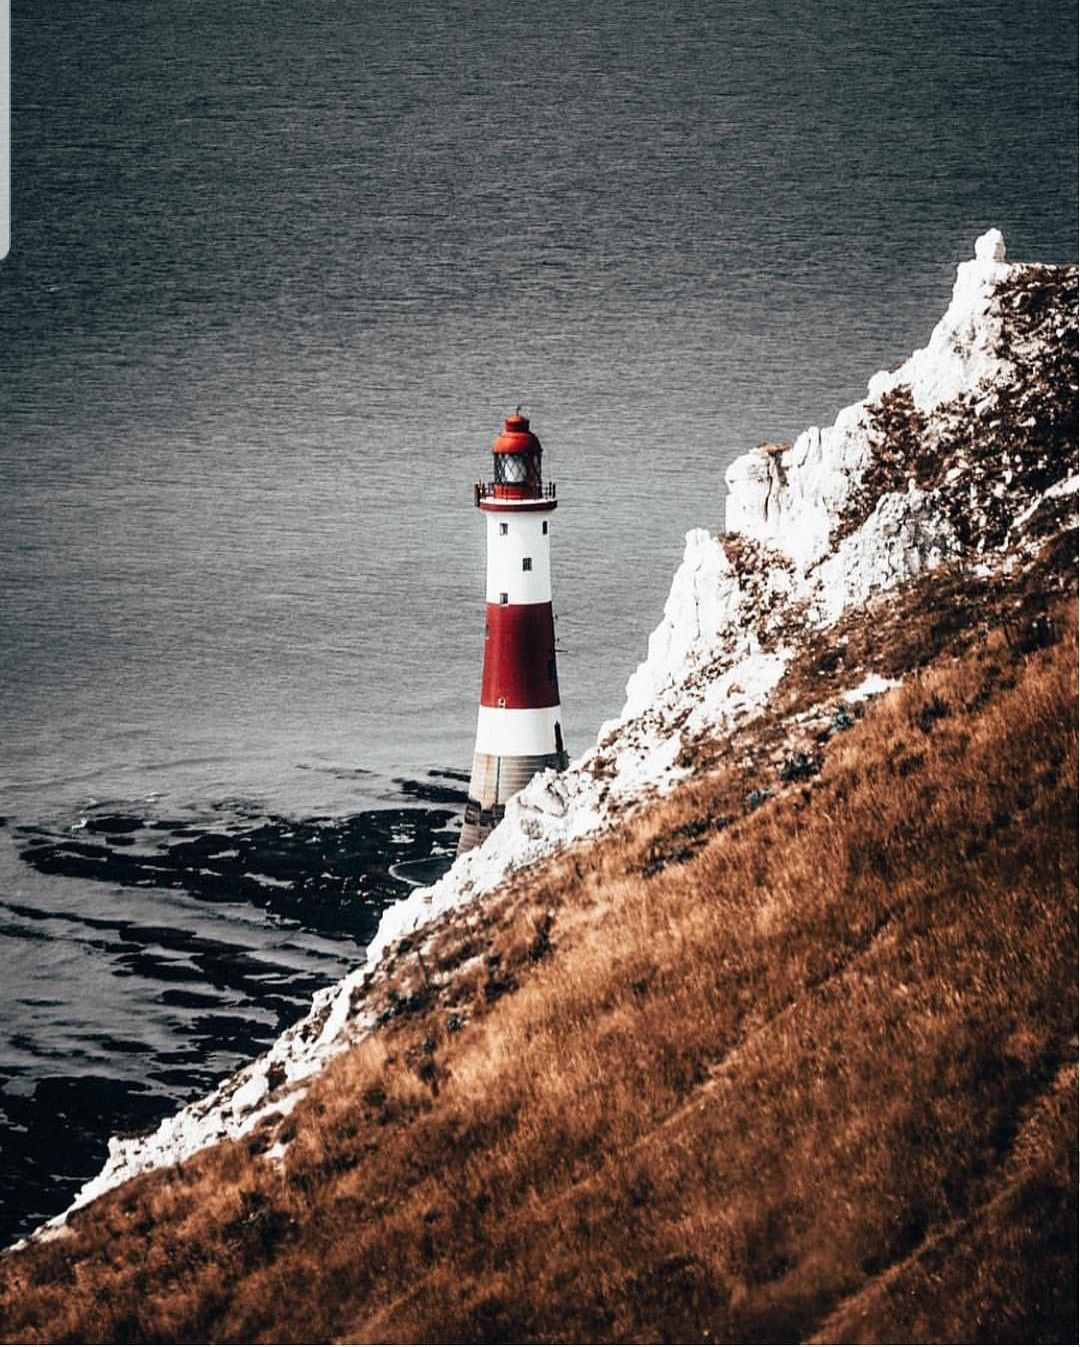 Pin By Linda Soto-Cruet On Lighthouses In 2019